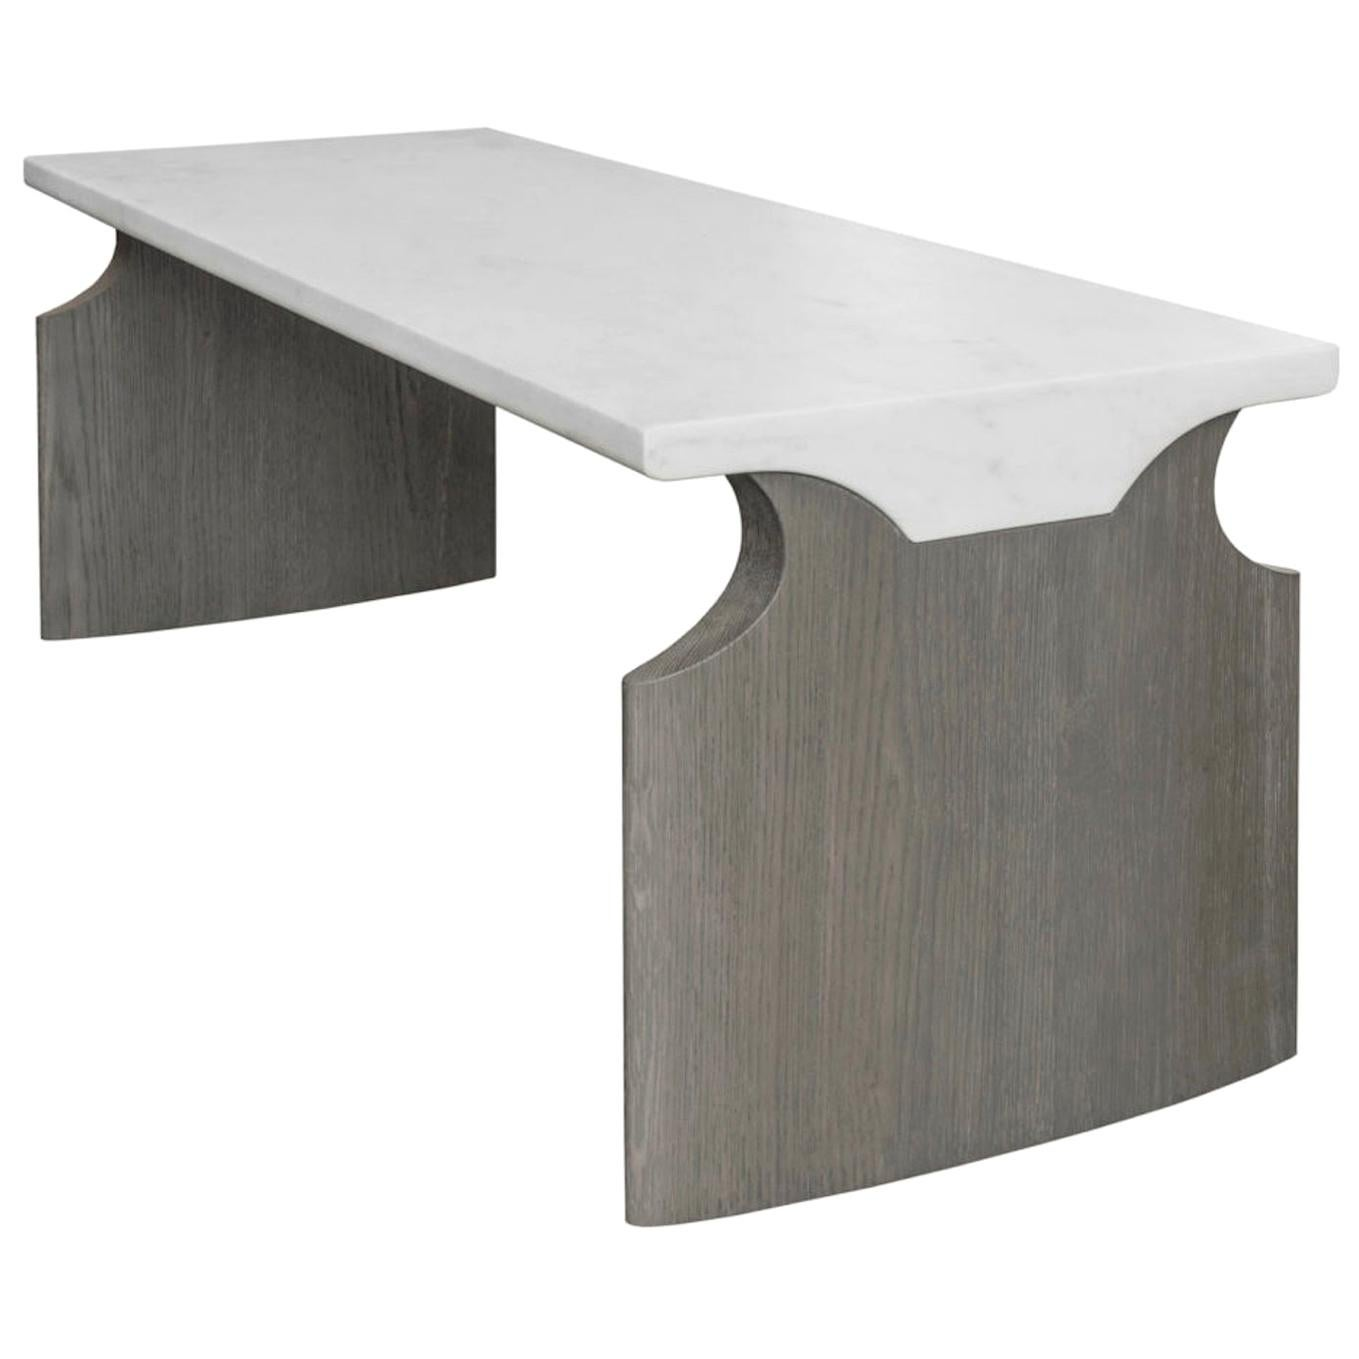 Atelier Linné Jay Table in Calacata Carved Marble and Brushed Tinted Oak